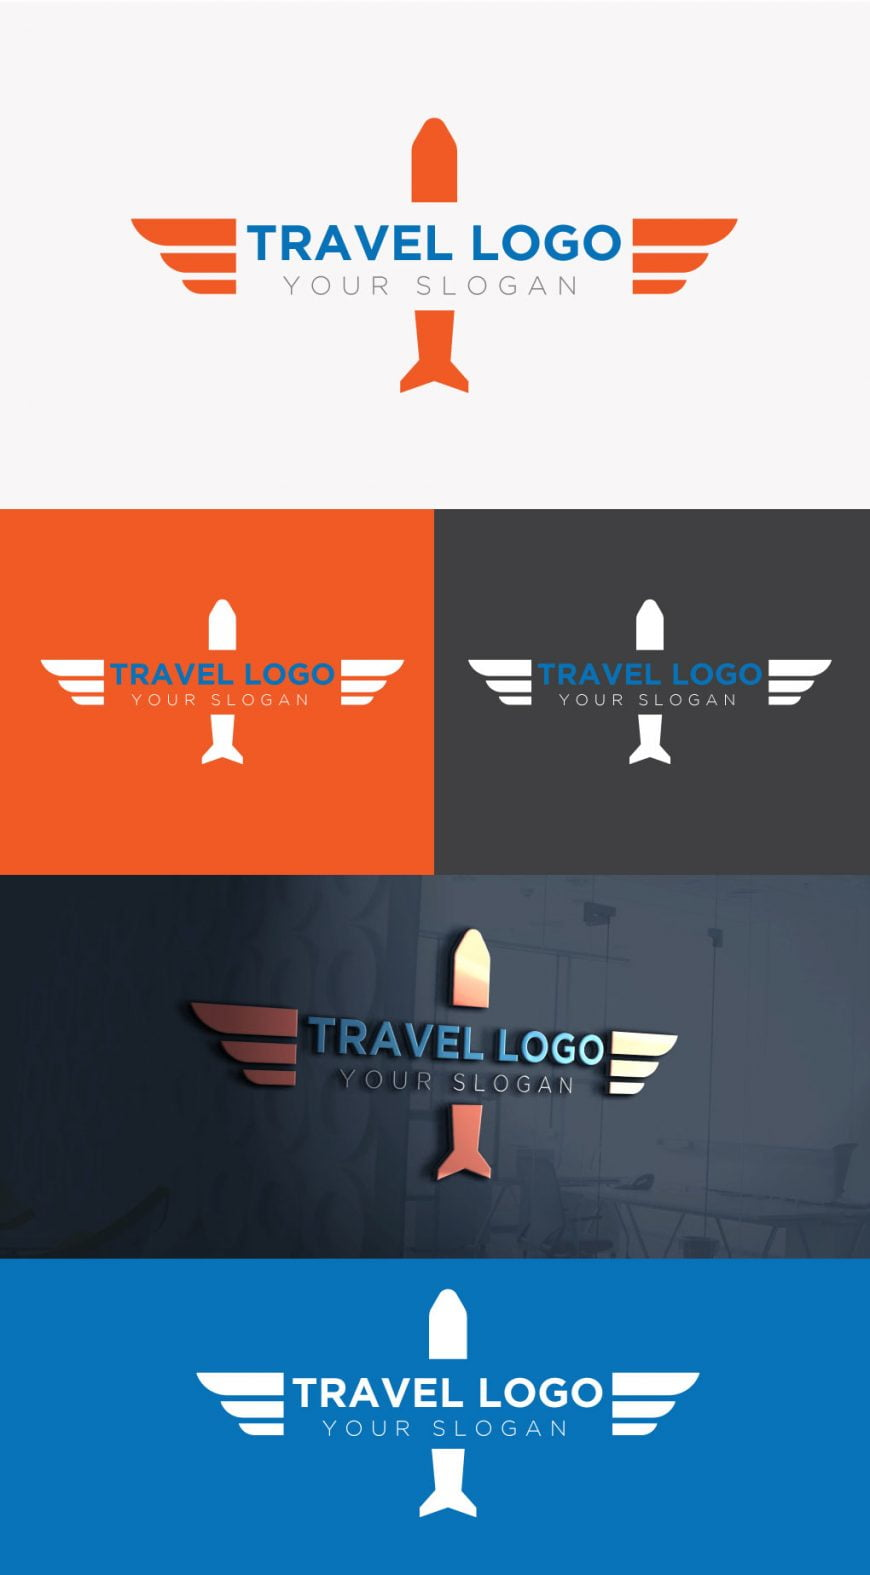 travel-logo-free-template